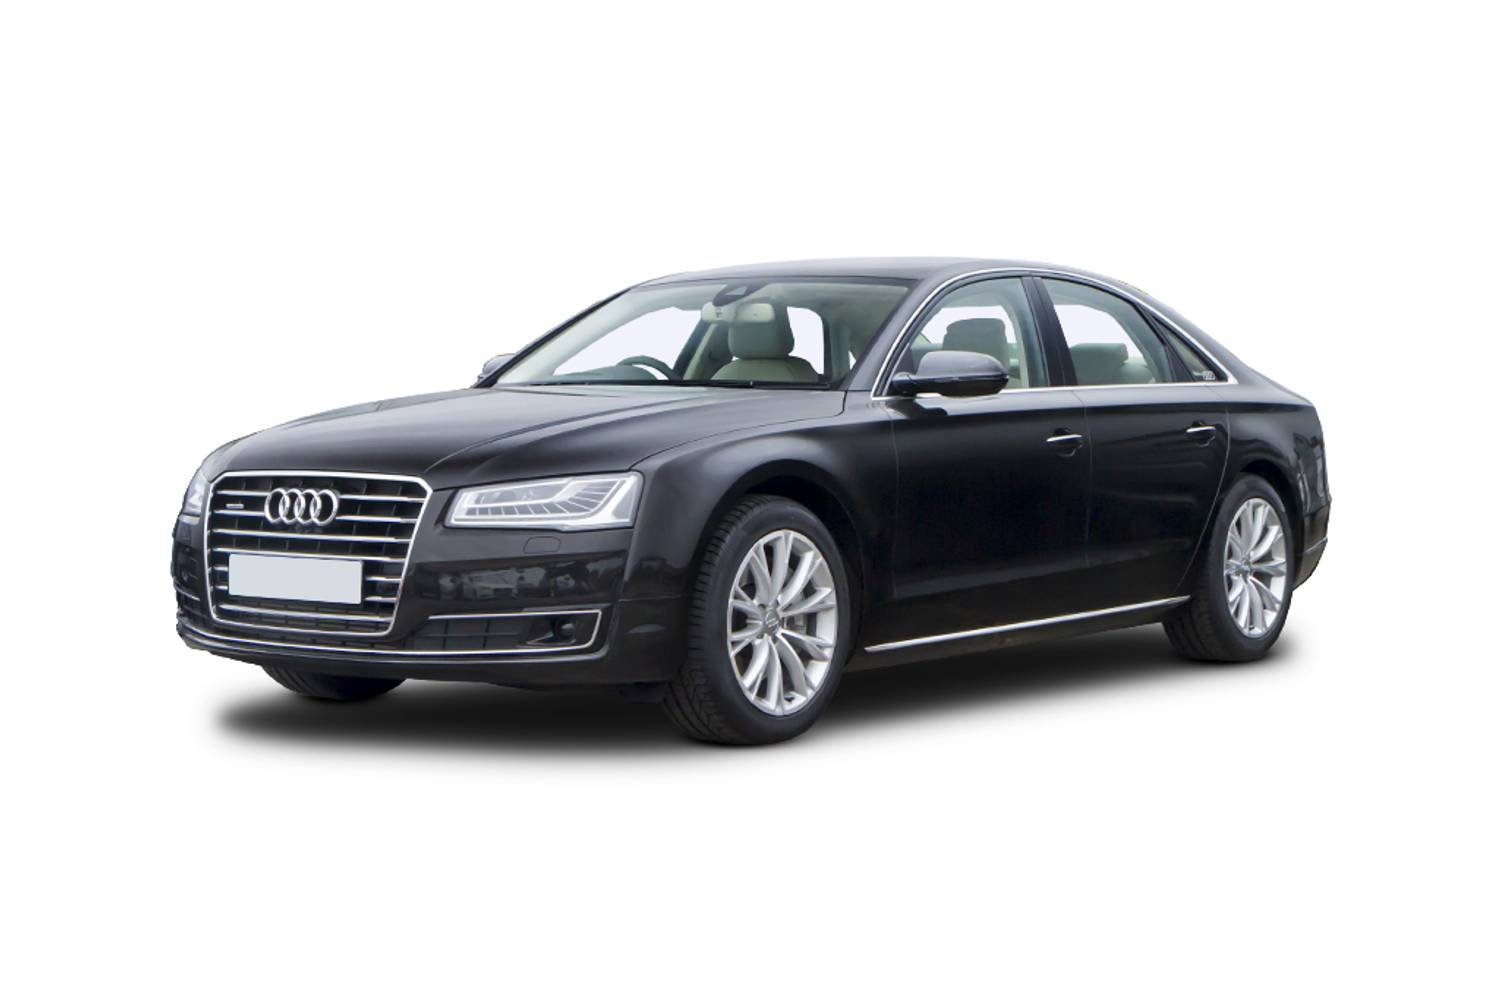 new audi a8 saloon special editions 3 0 tdi quattro black edition 4 door tip auto 2016 for sale. Black Bedroom Furniture Sets. Home Design Ideas